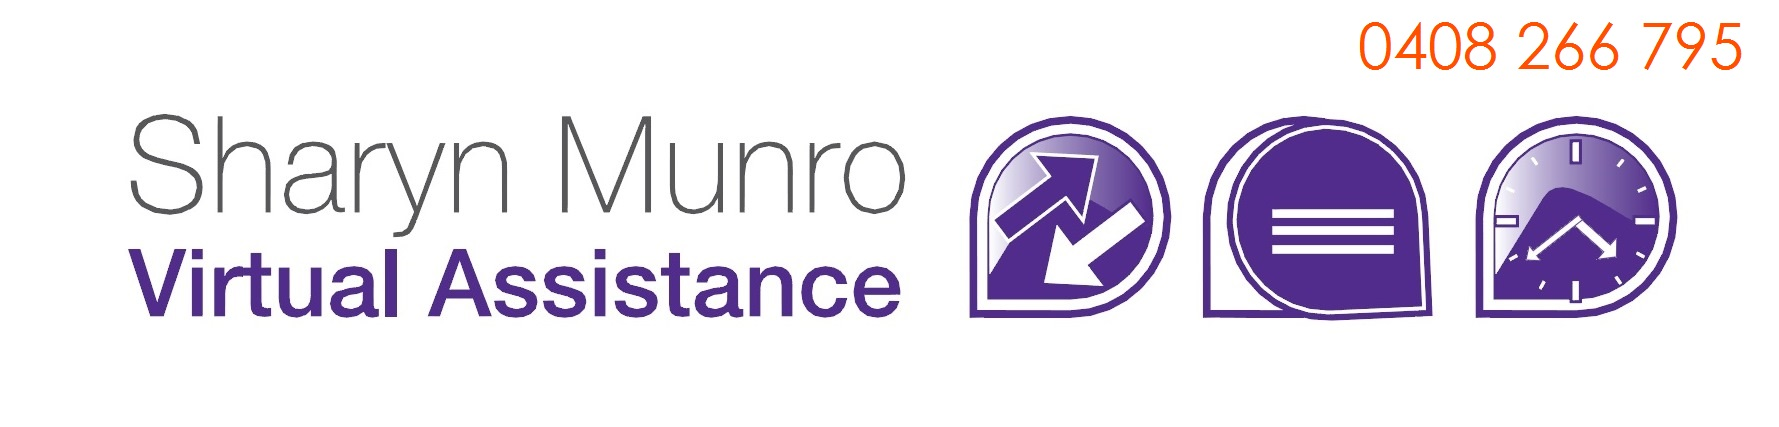 Sharyn Munro Virtual Assistance